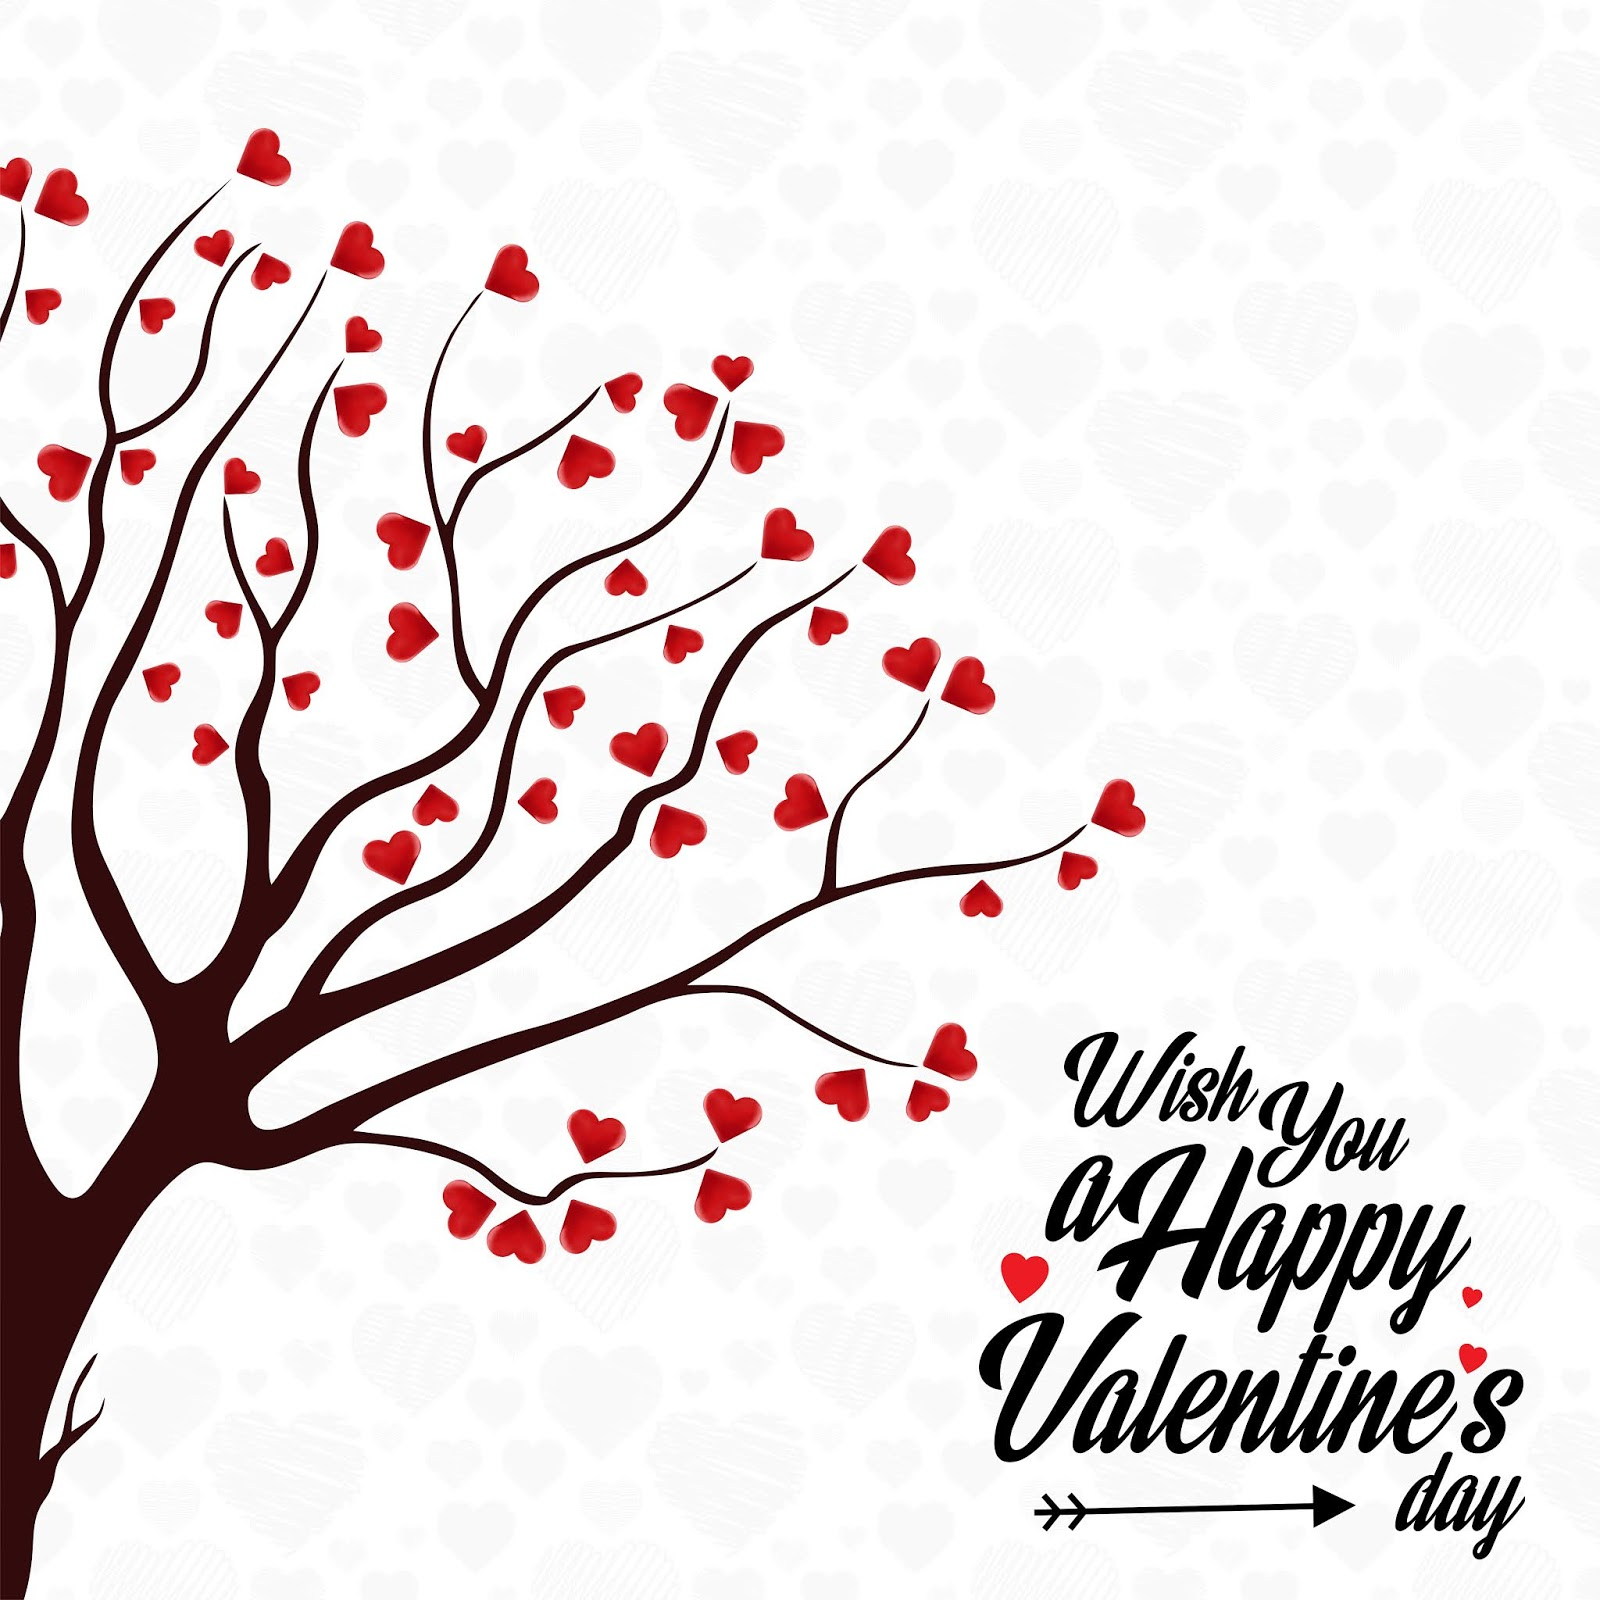 Wish You Happy Valentine S Day Heart Tree Free Download Vector CDR, AI, EPS and PNG Formats